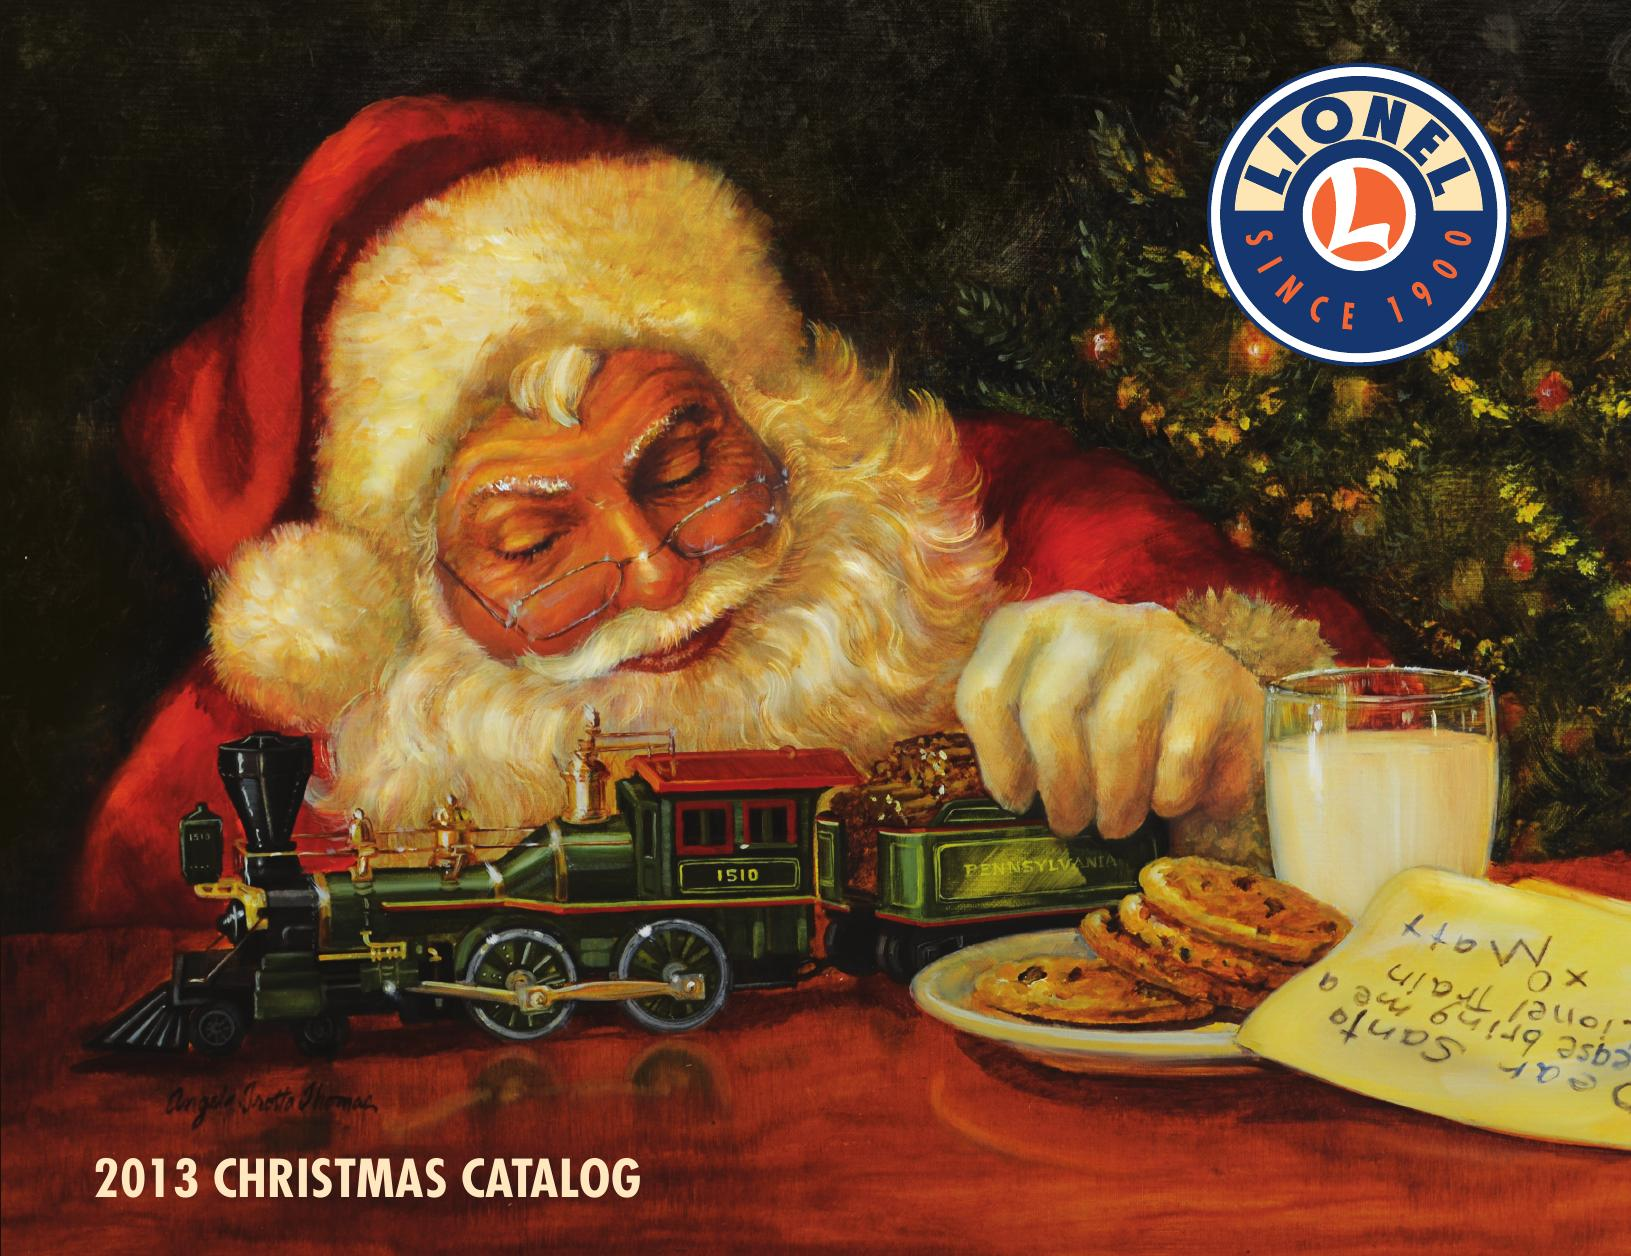 Lionel Catalogs - Christmas 2013